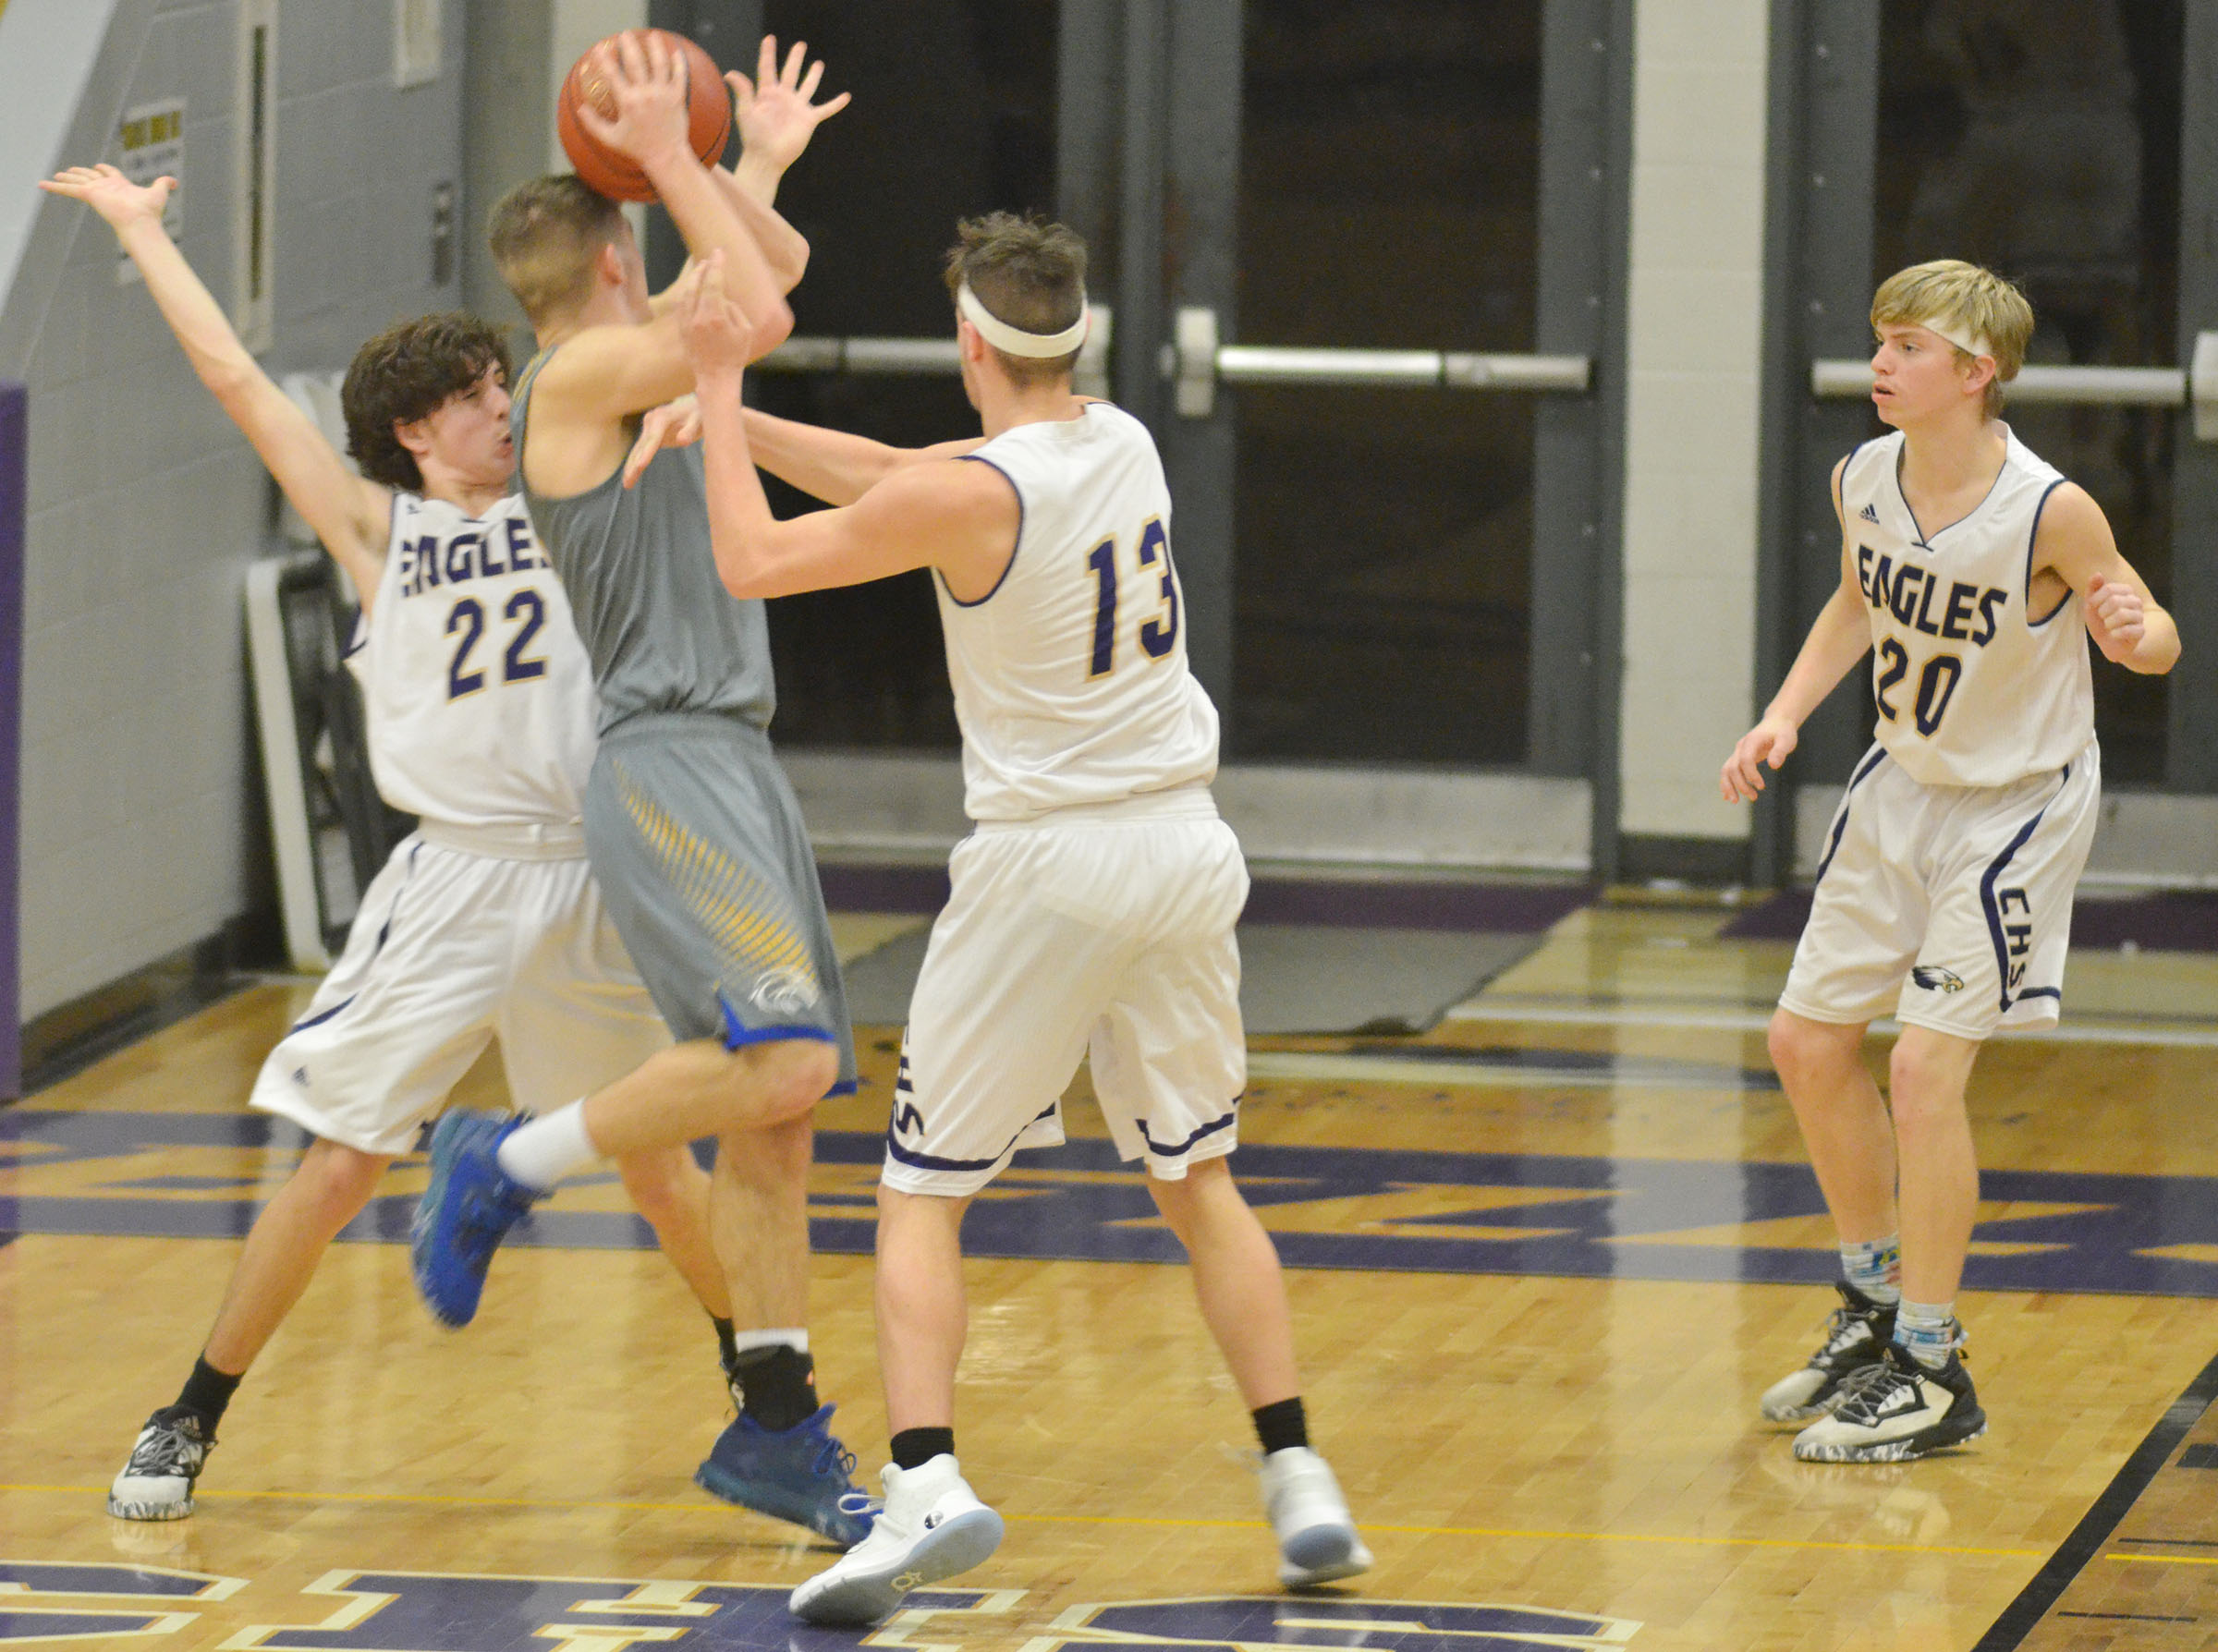 Campbellsville Middle School eighth-grader John Orberson, at left, and Logan Cole, center, block a shot.